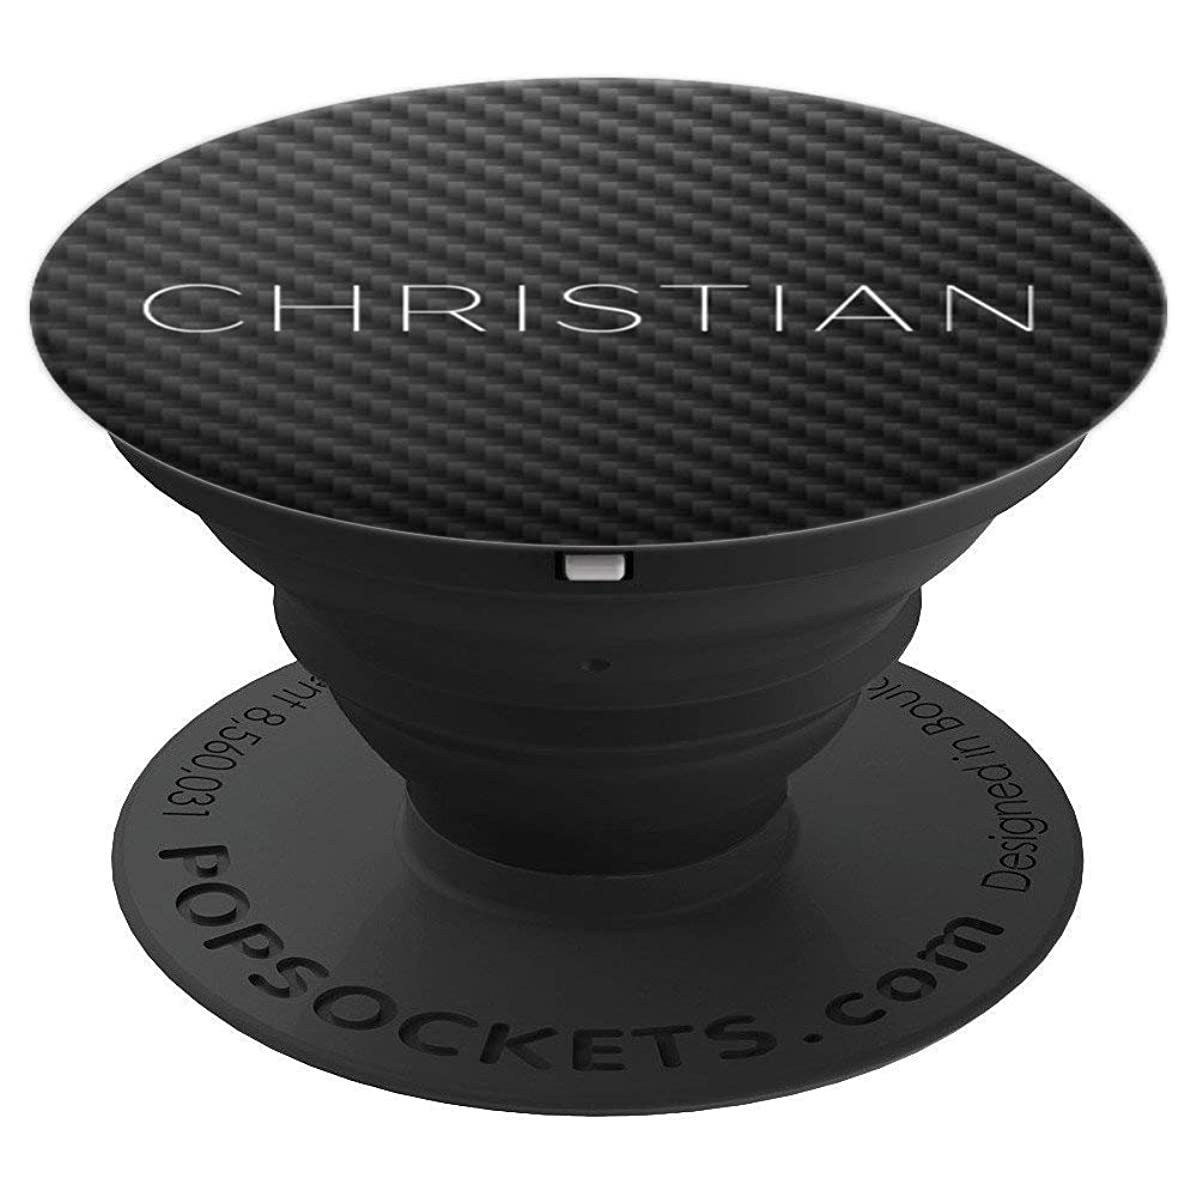 Christian Name Personalized Birthday Men Boys Carbon Gift - PopSockets Grip and Stand for Phones and Tablets